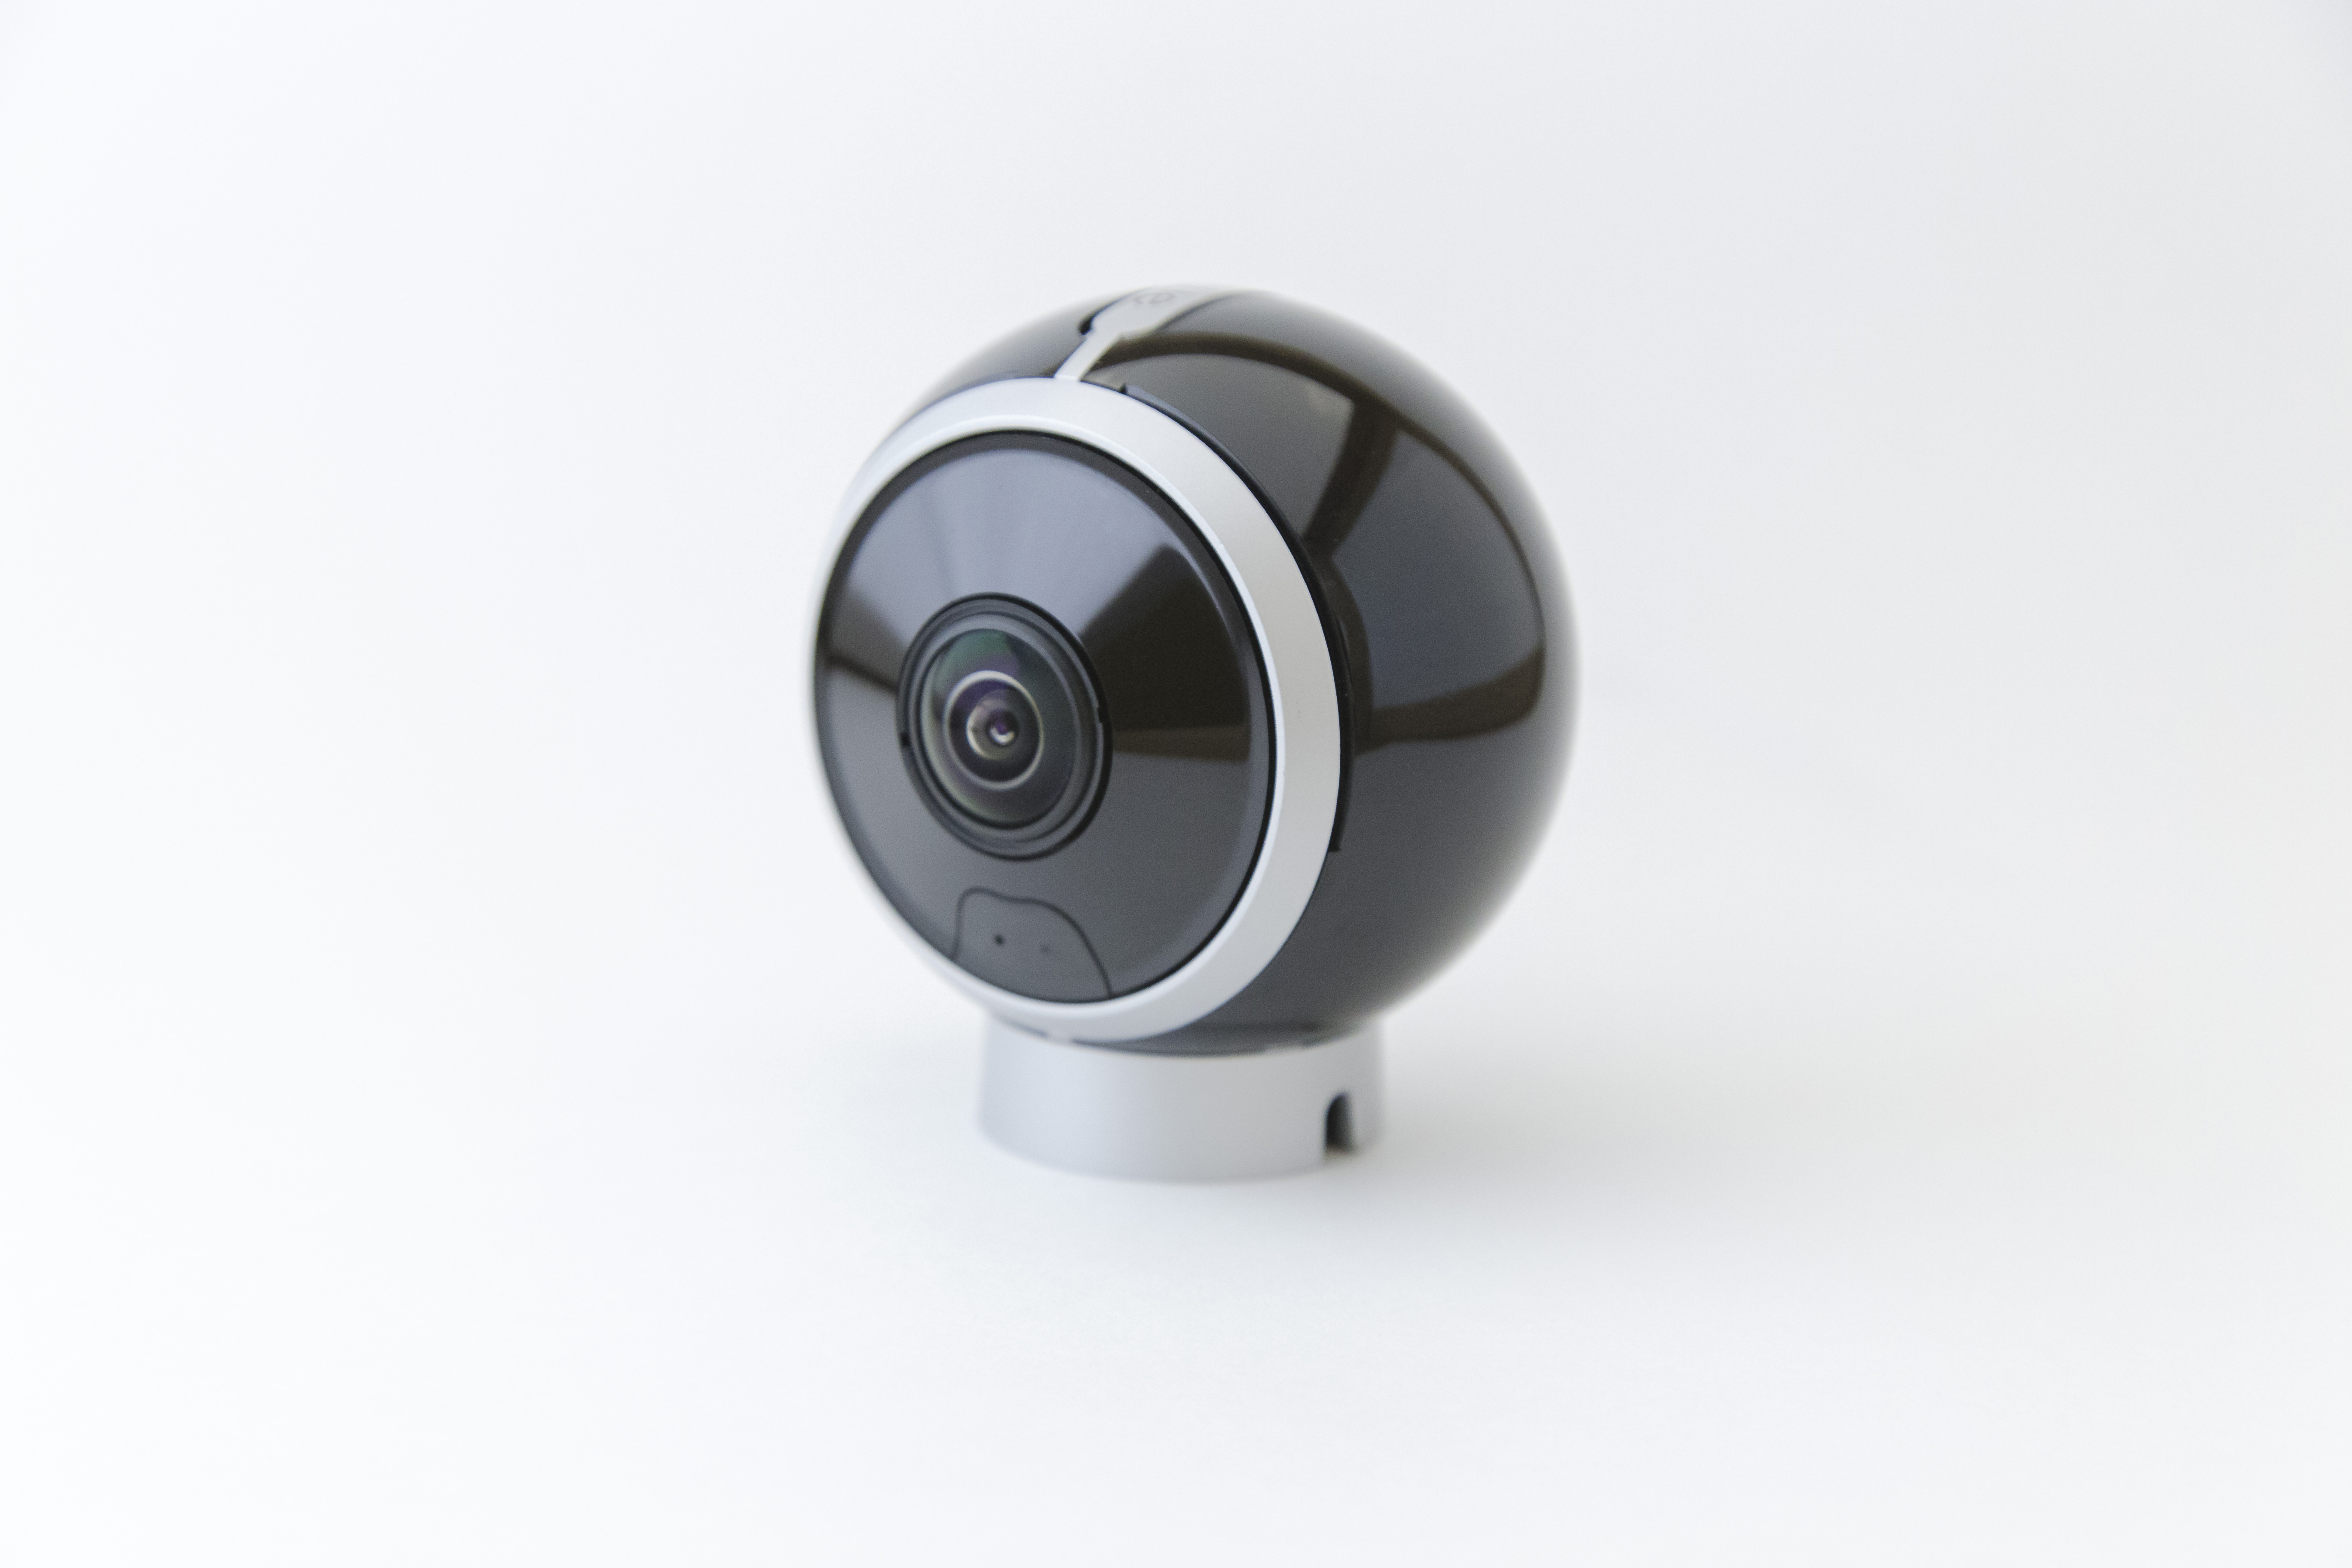 This $500 4K 360-degree camera comes with YouTube livestreaming integration.